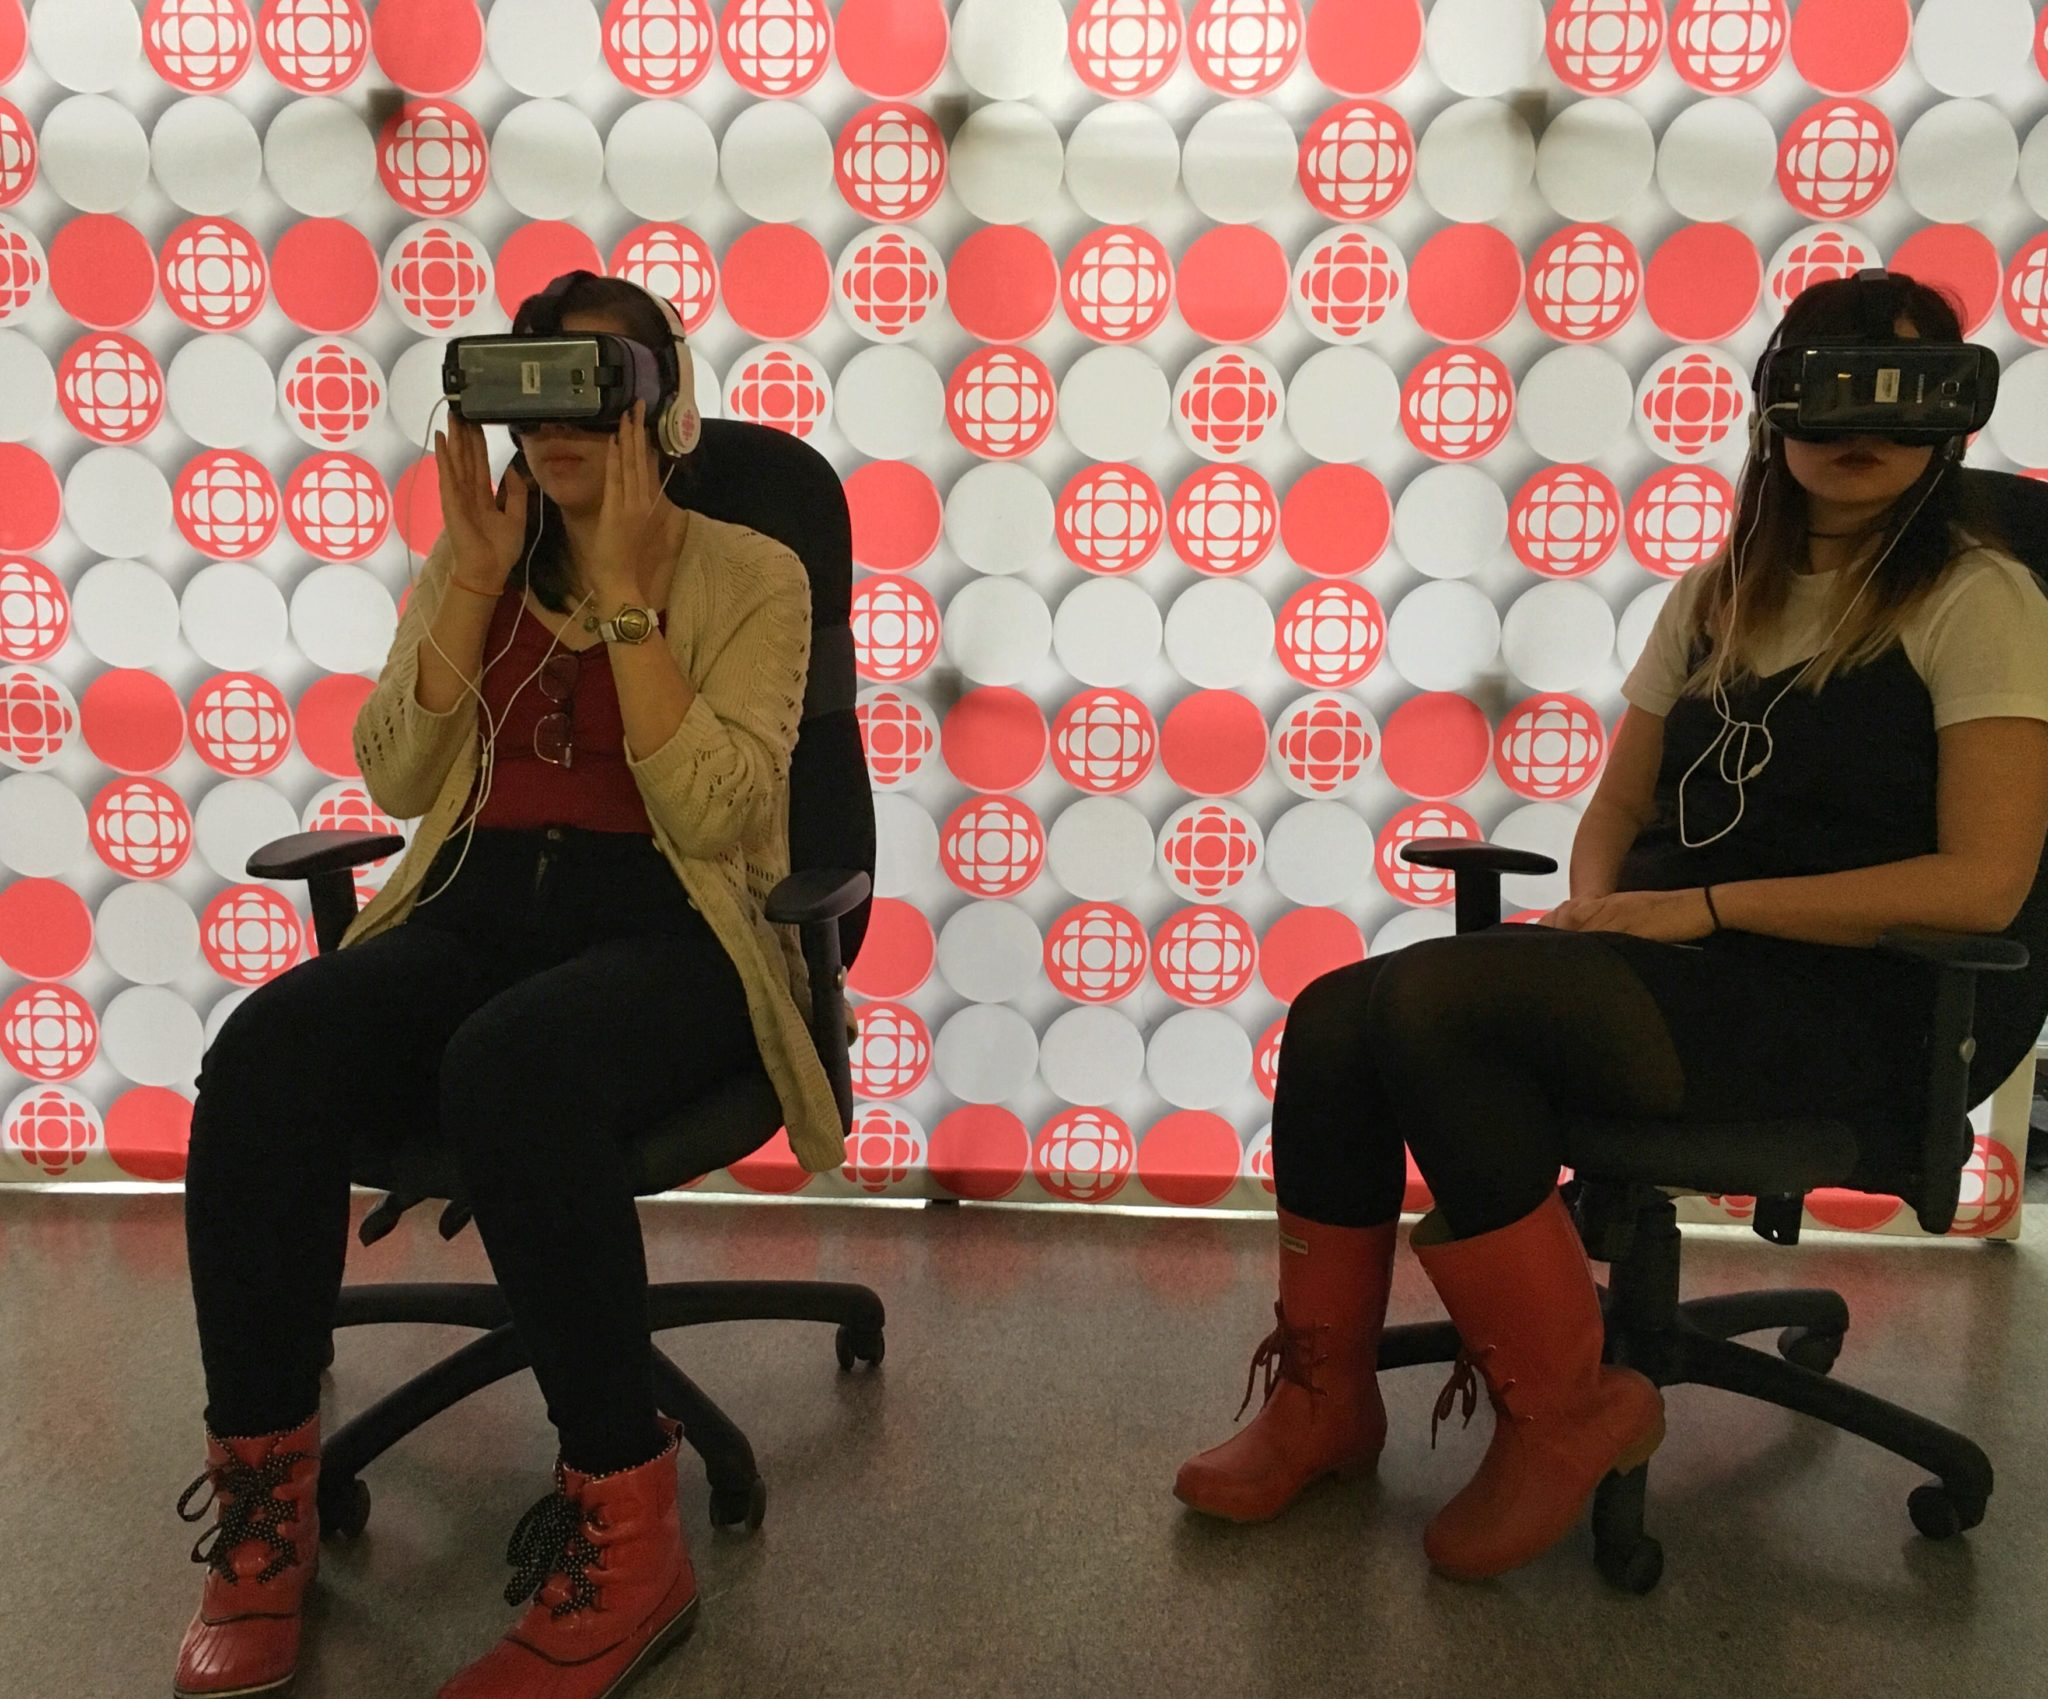 The Quidditch team. Highway of Tears virtual reality documentary